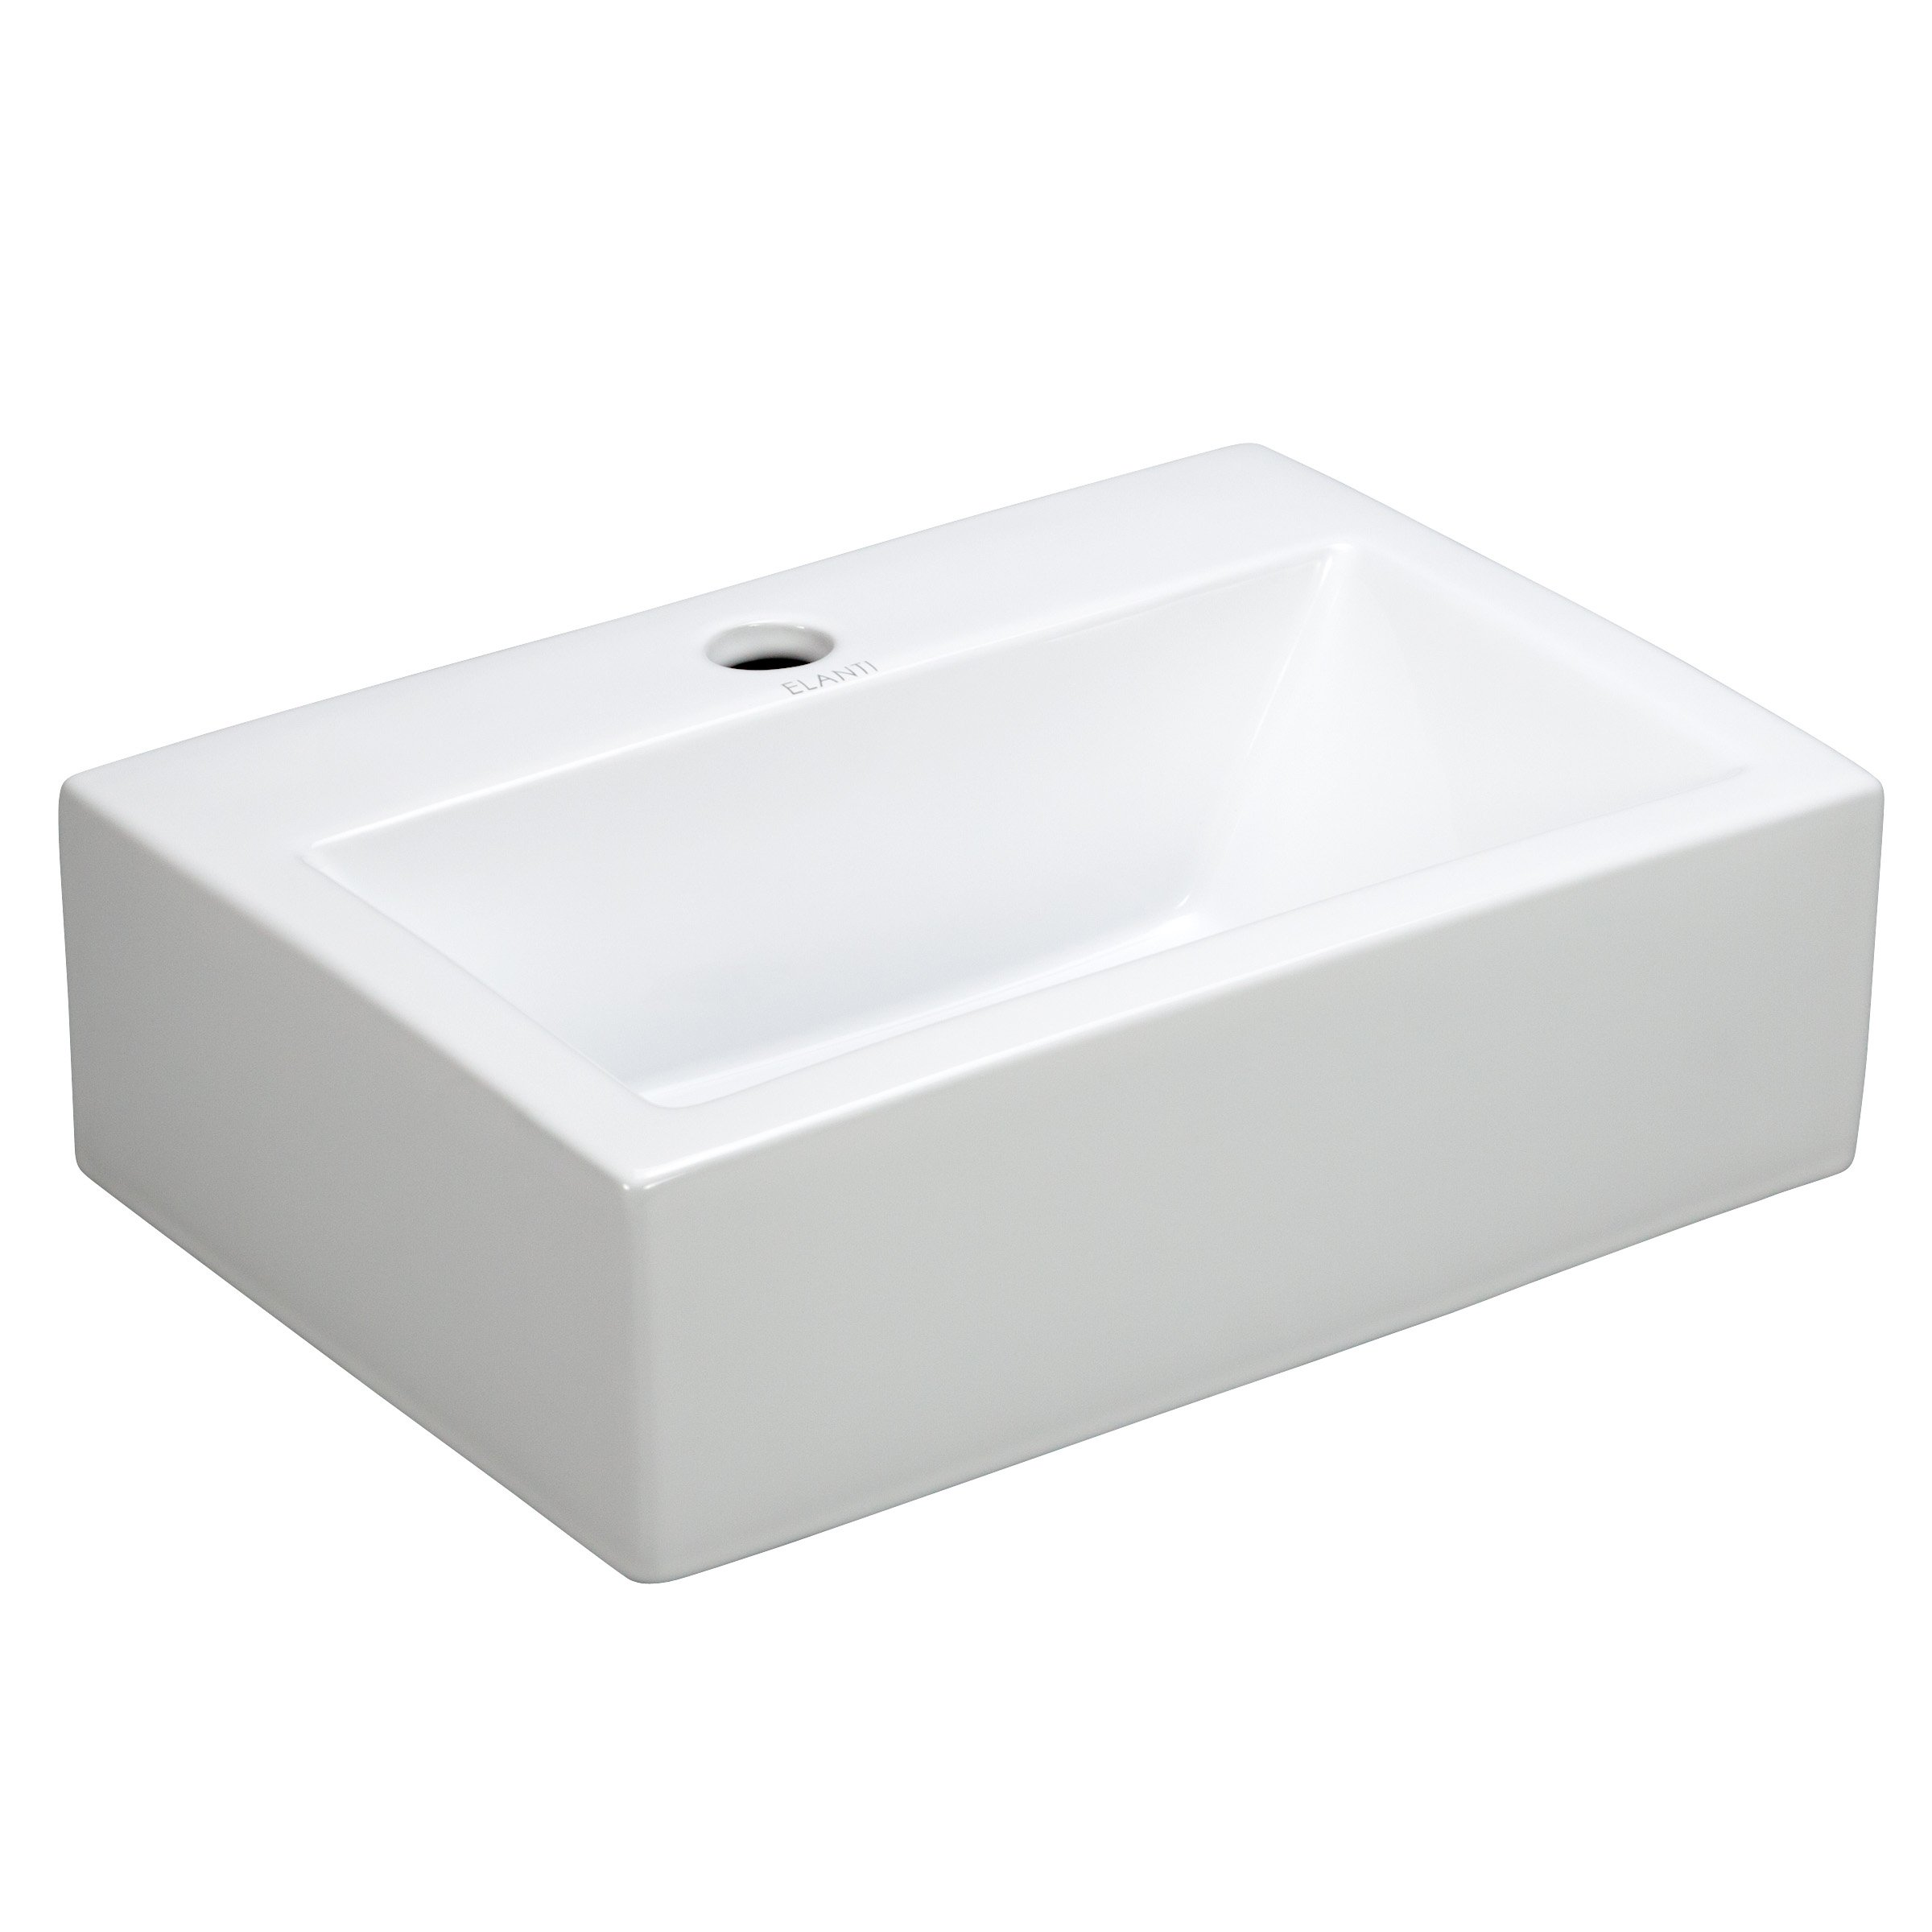 Elite Sinks EC9859 Porcelain Wall-Mounted Rectangle Sink, White by Elite Sinks Ltd.